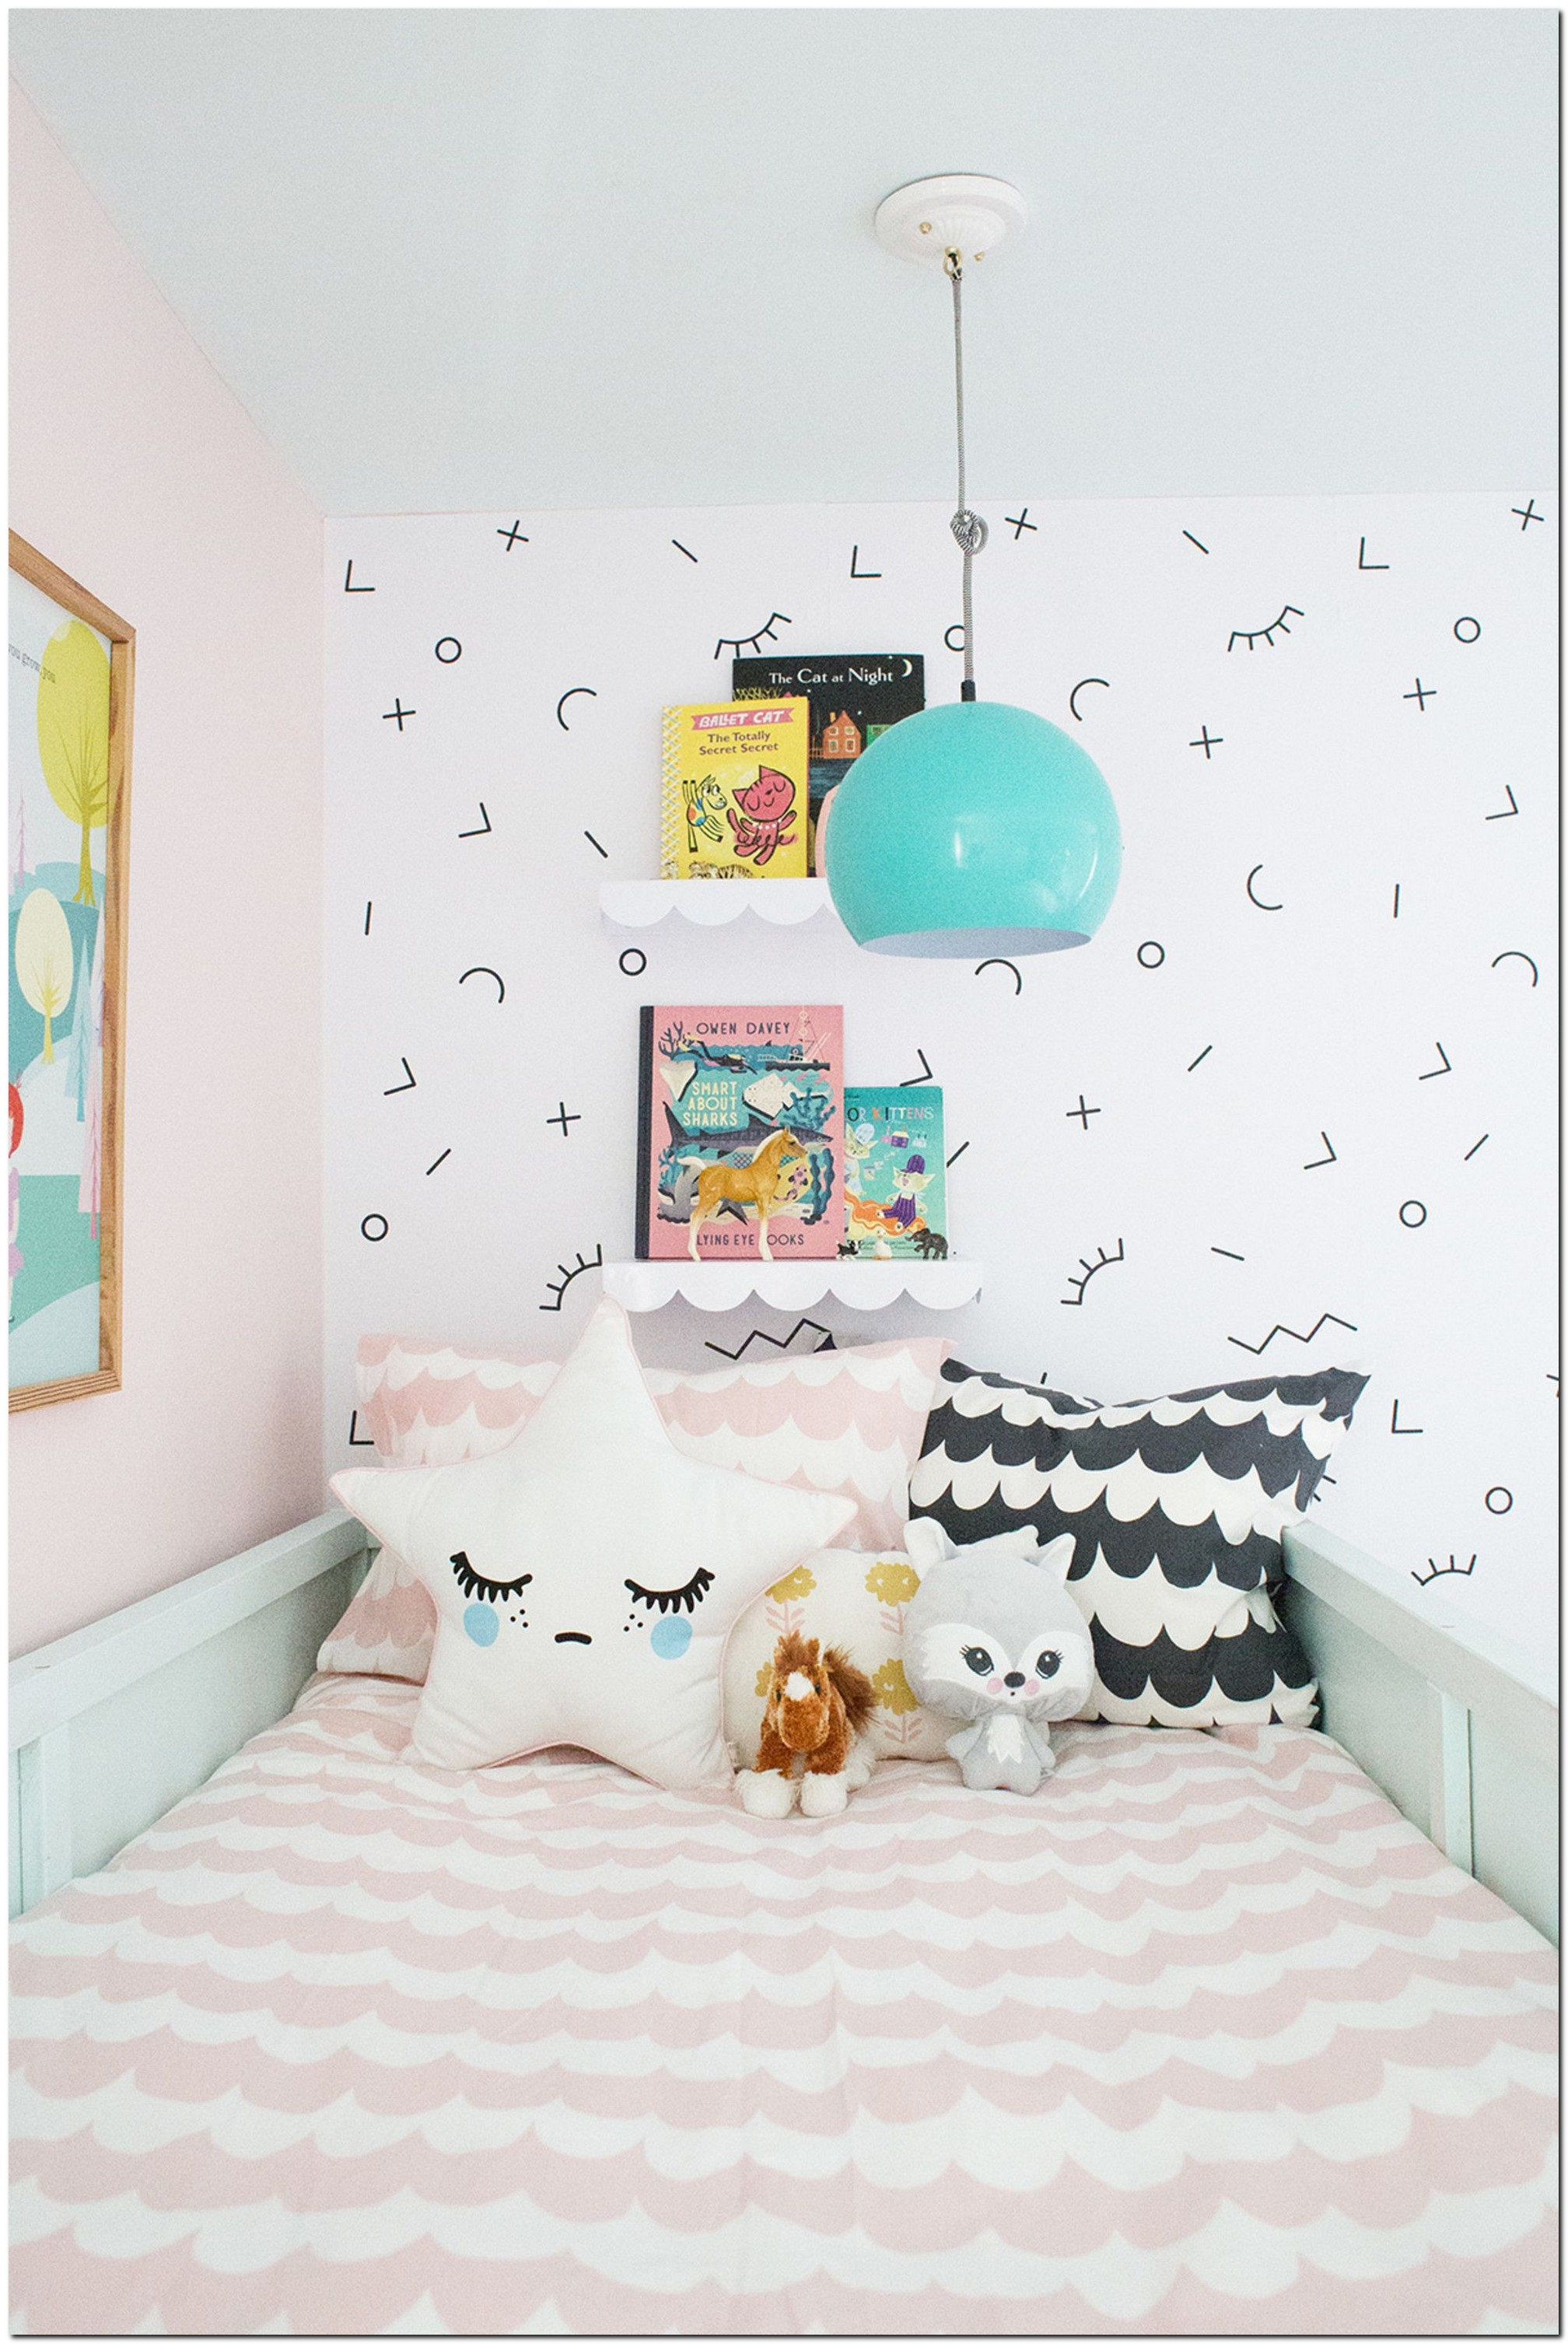 Why you need bunk beds for kids 2